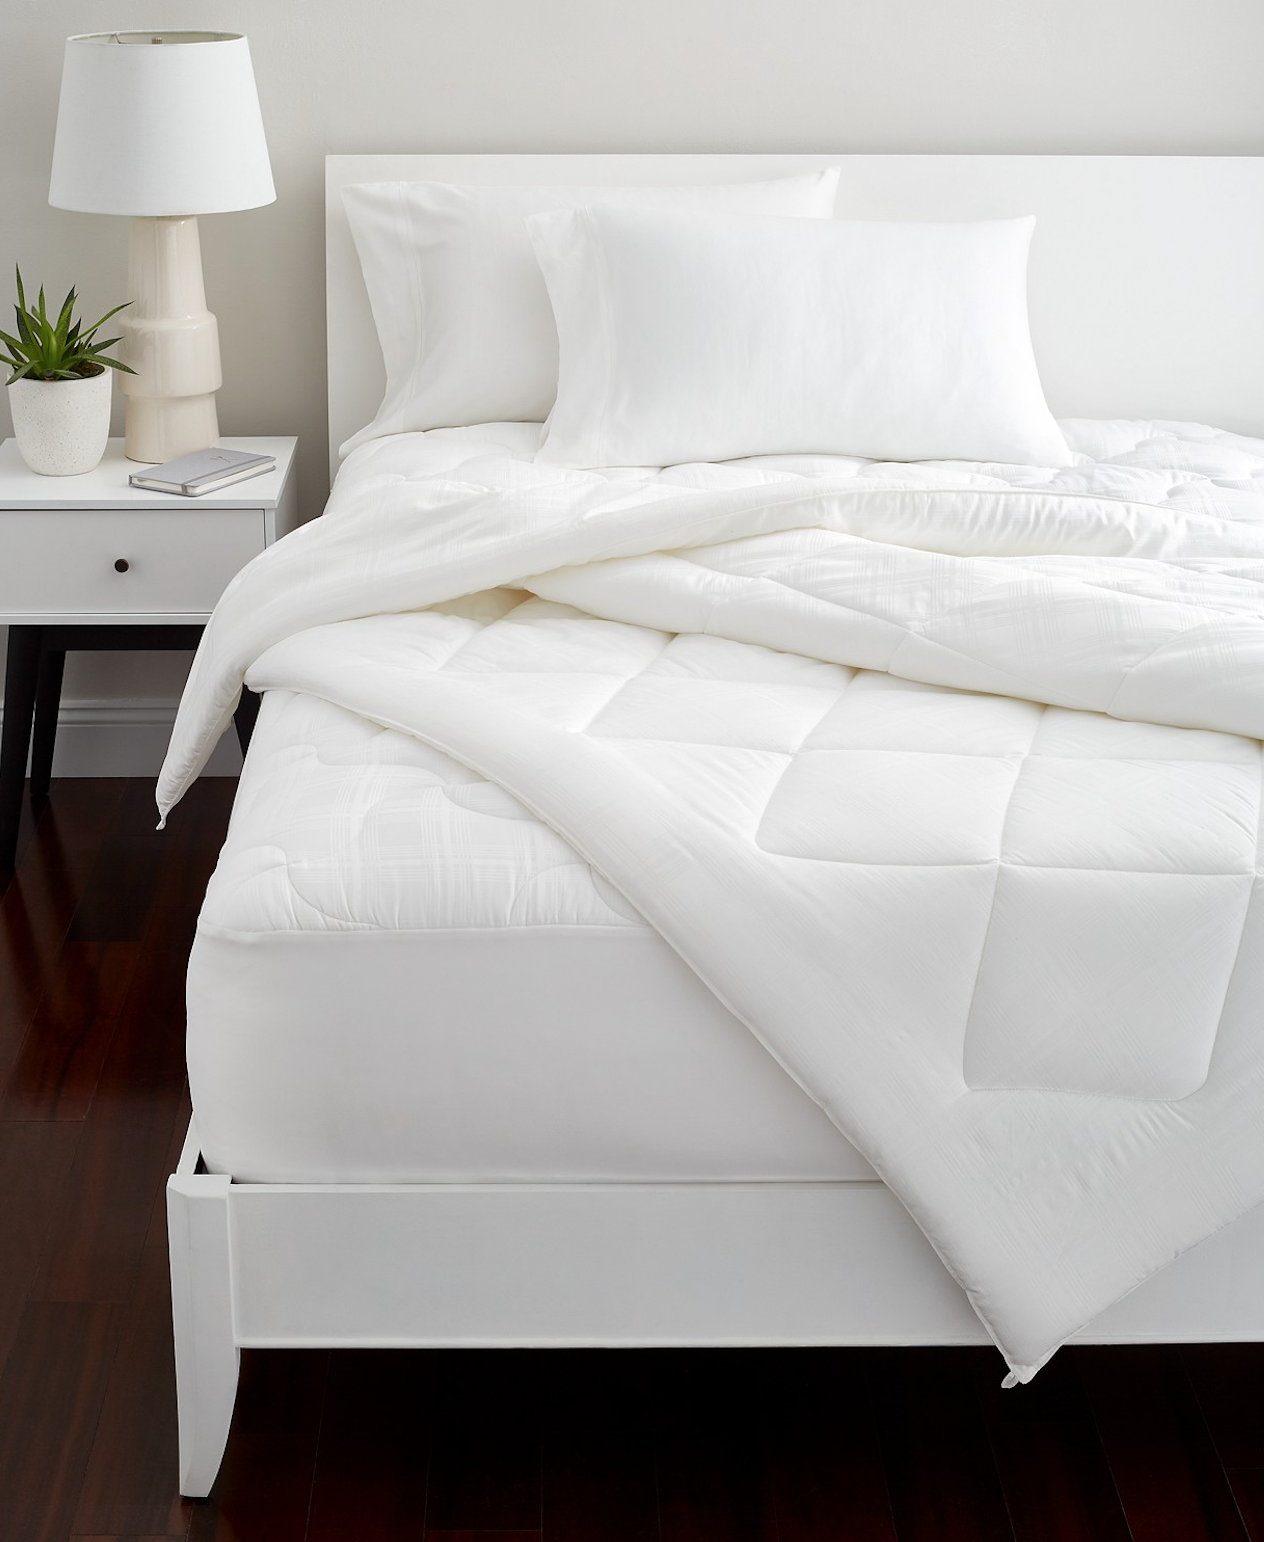 34 Things To Help You Embrace Your Homebody Ness Bed Comforters Cozy Bedroom